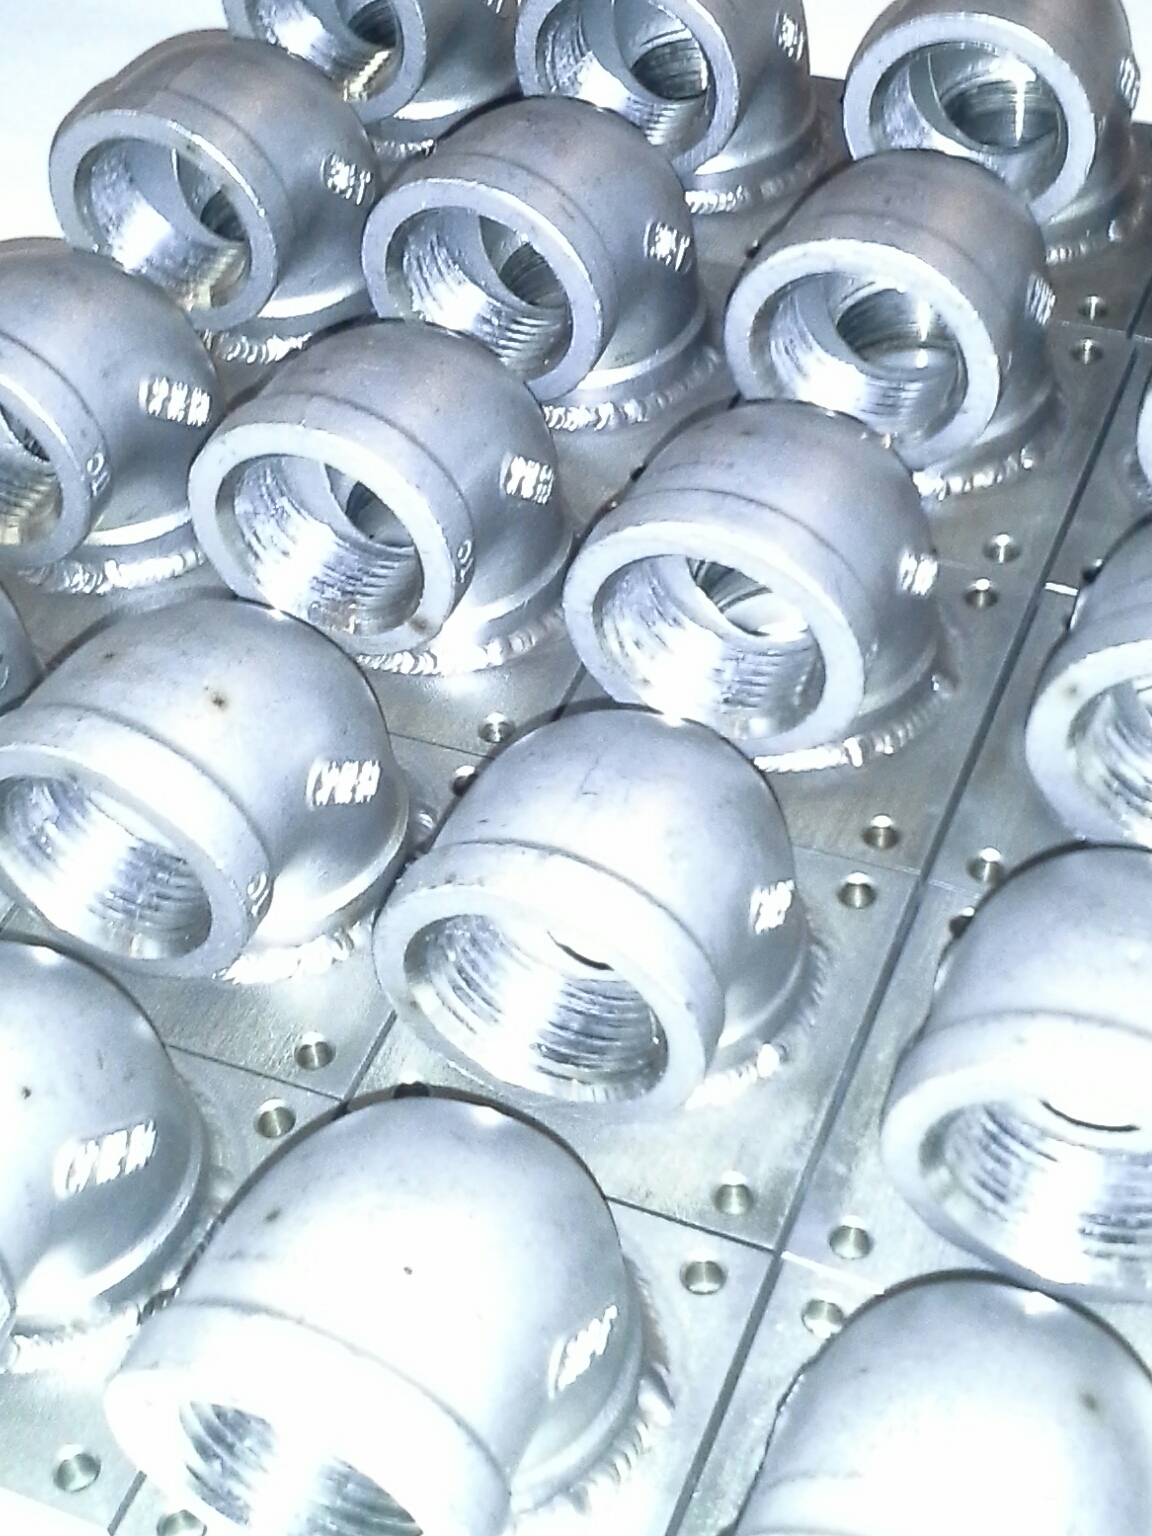 Stainless Weldments